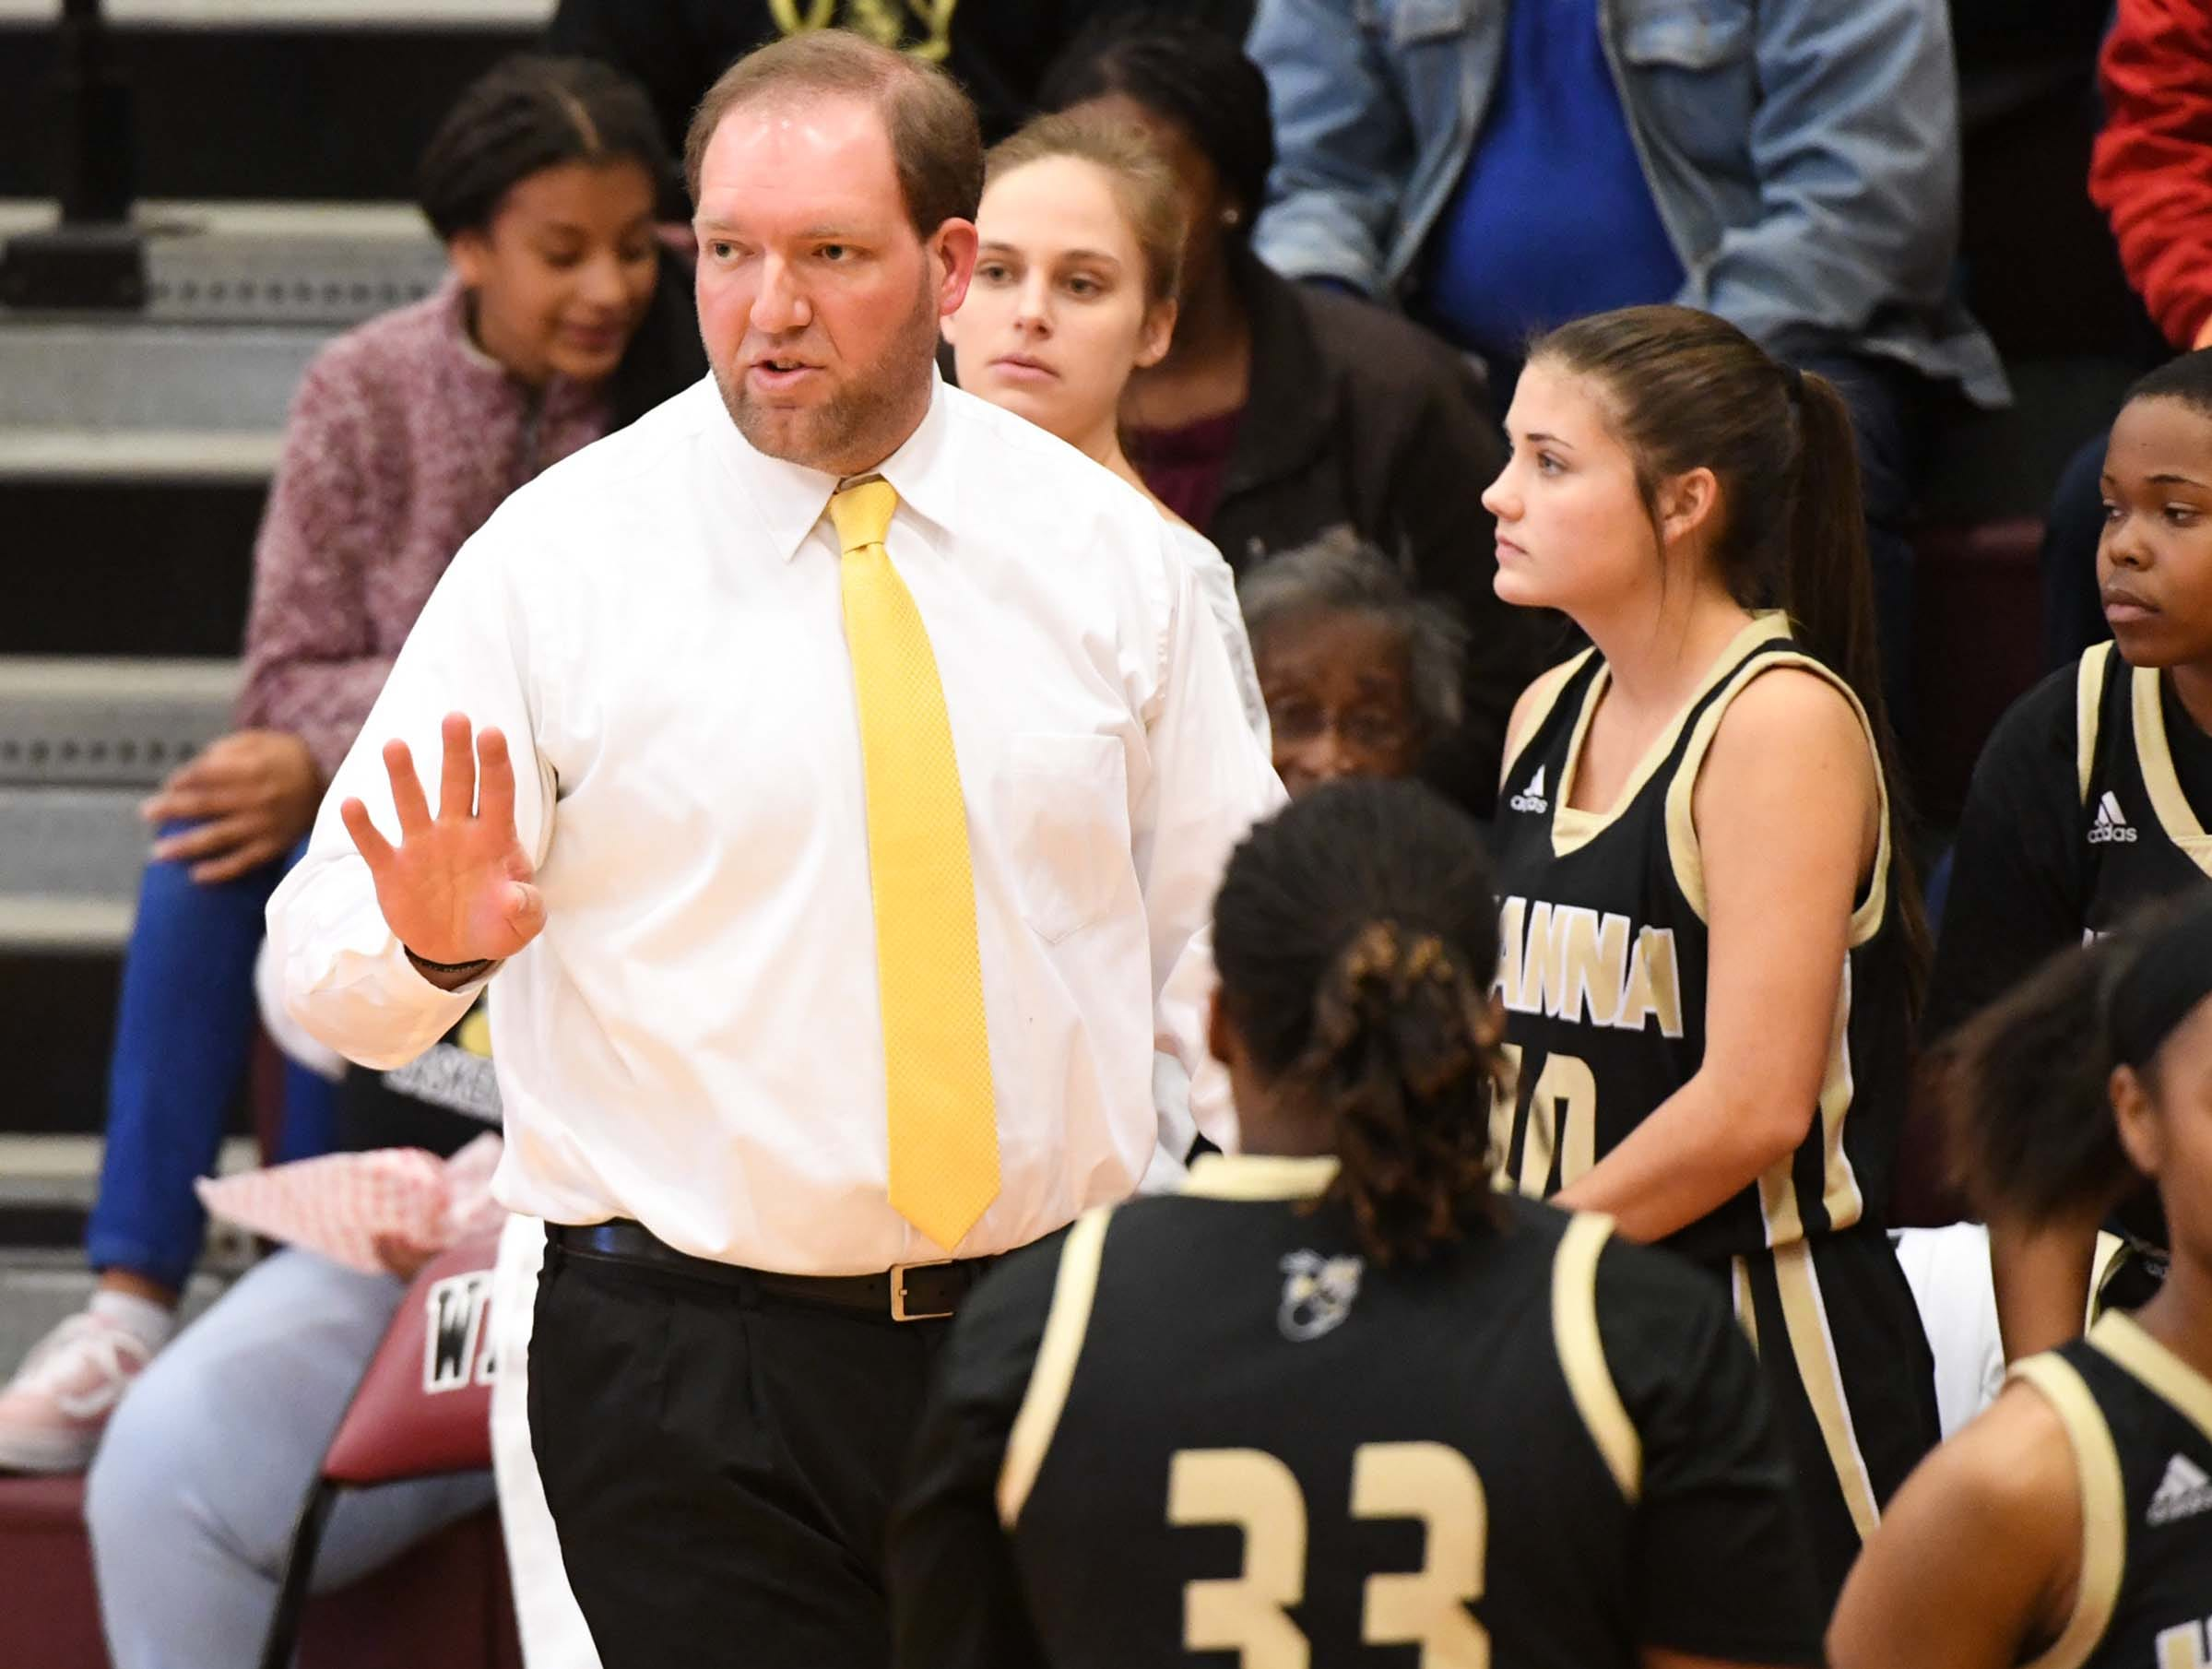 TL Hanna head coach Glenn Elrod during the first quarter at Westside High School in Anderson on Friday.